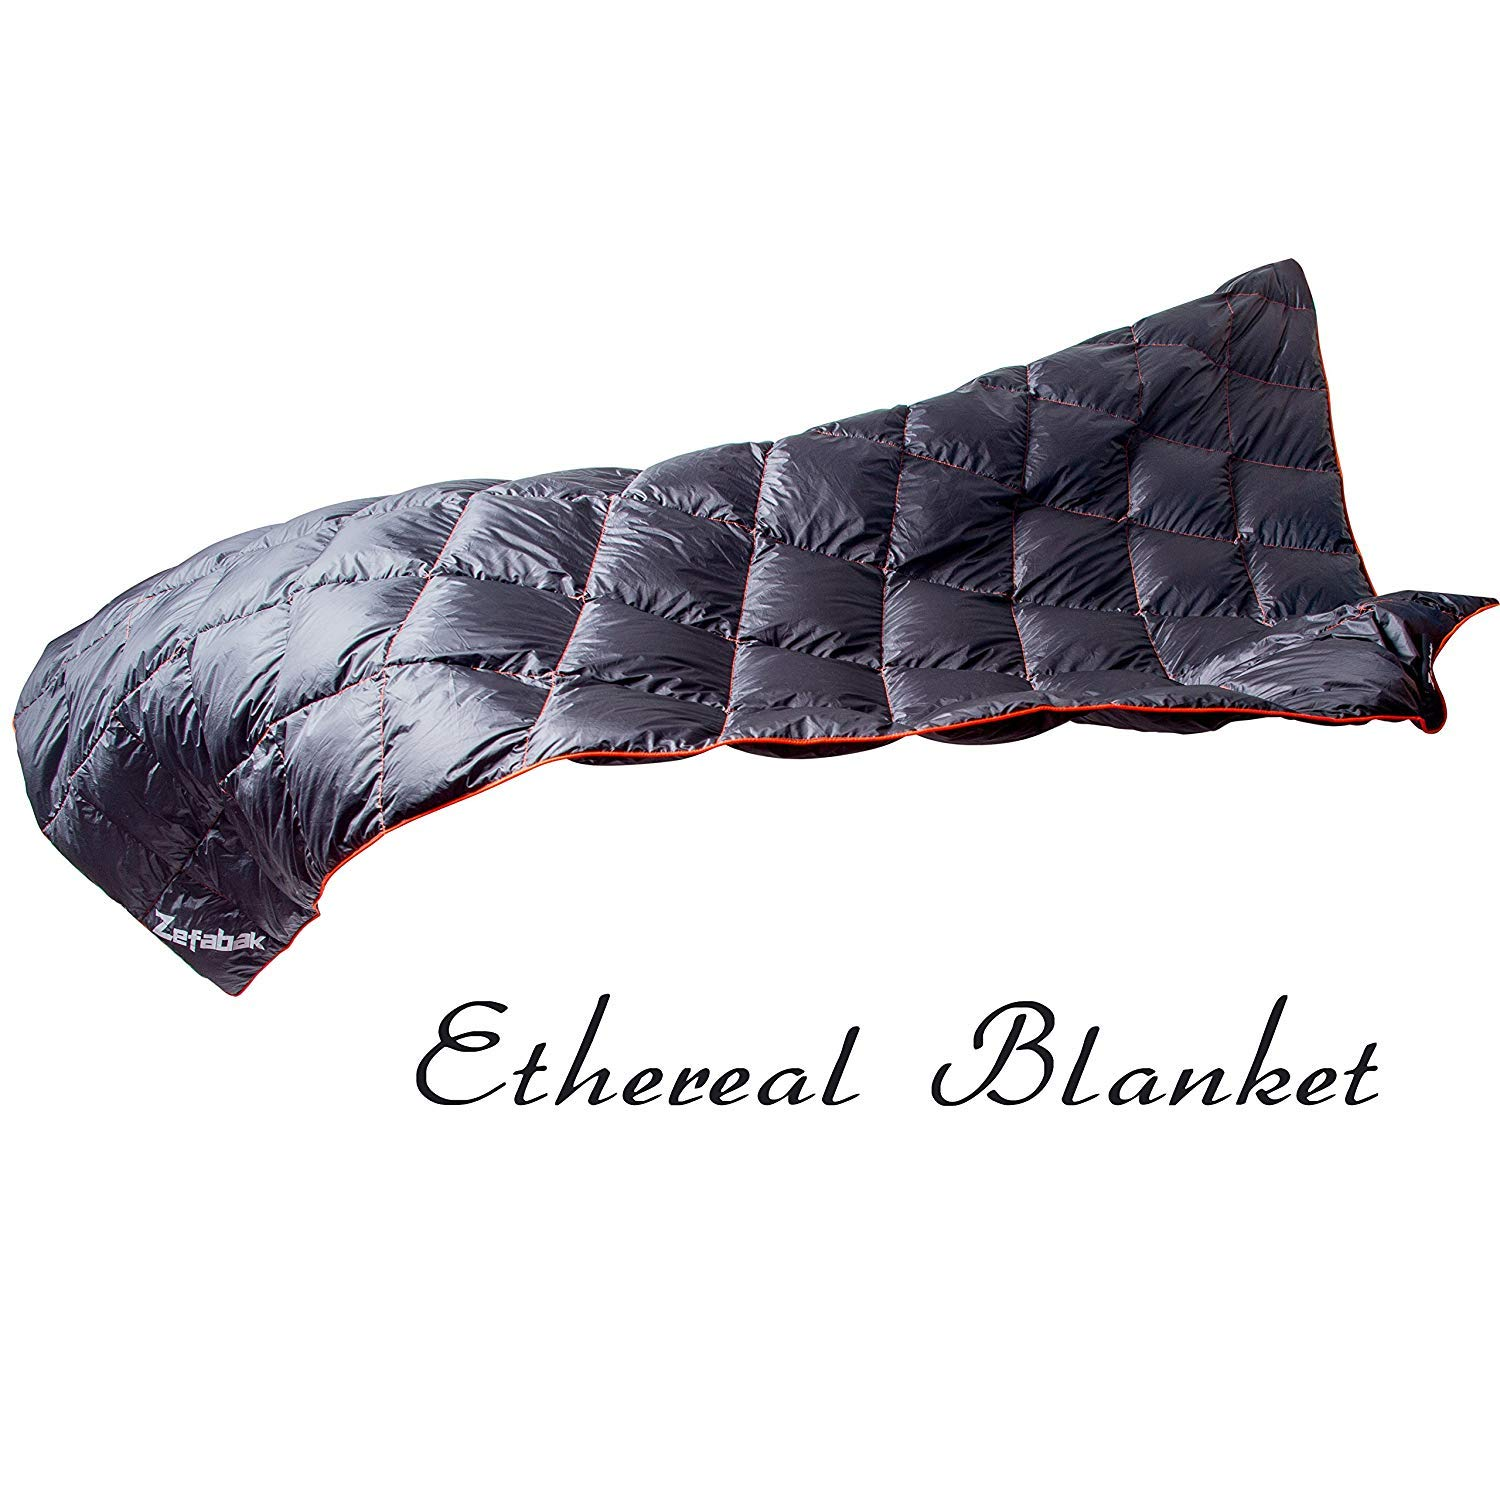 Black Down Blanket for Camping Indoor Outdoor Puffy 600 Fill Power Duck Down Cloudlet Blanket or Sleeping Bag Replacement